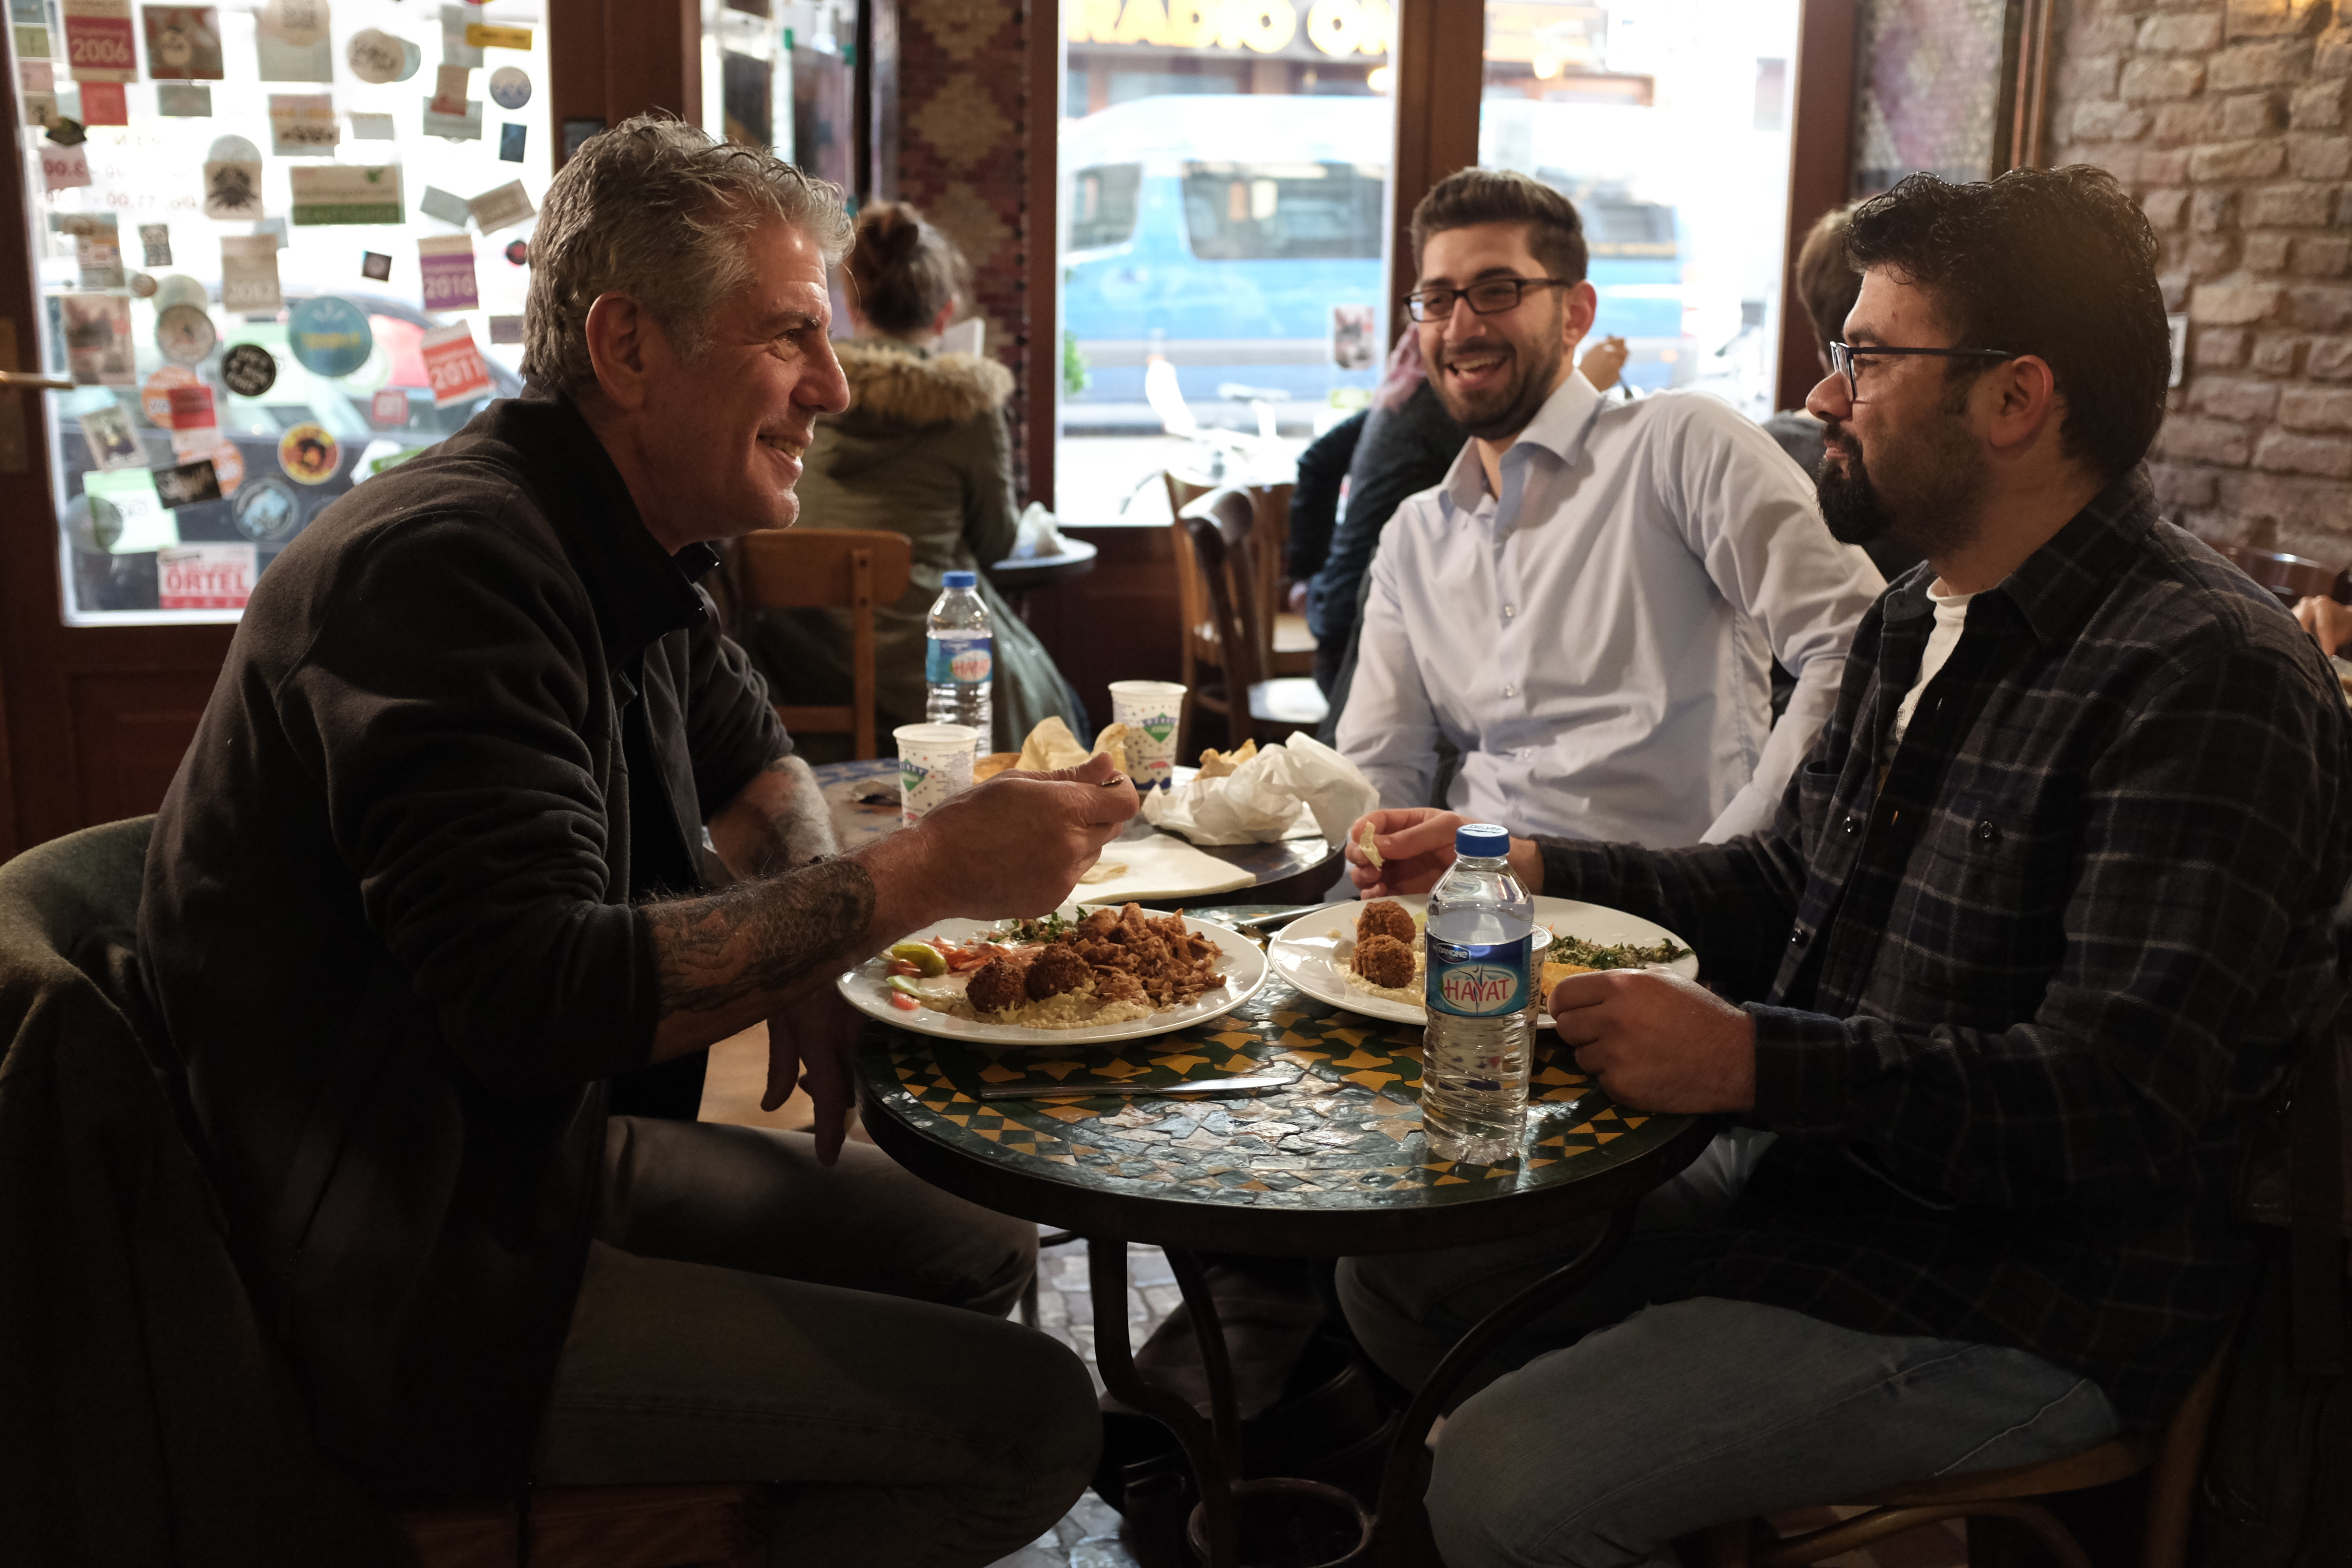 Anthony Bourdain: Parts Unknown' in Cologne, Germany: Just